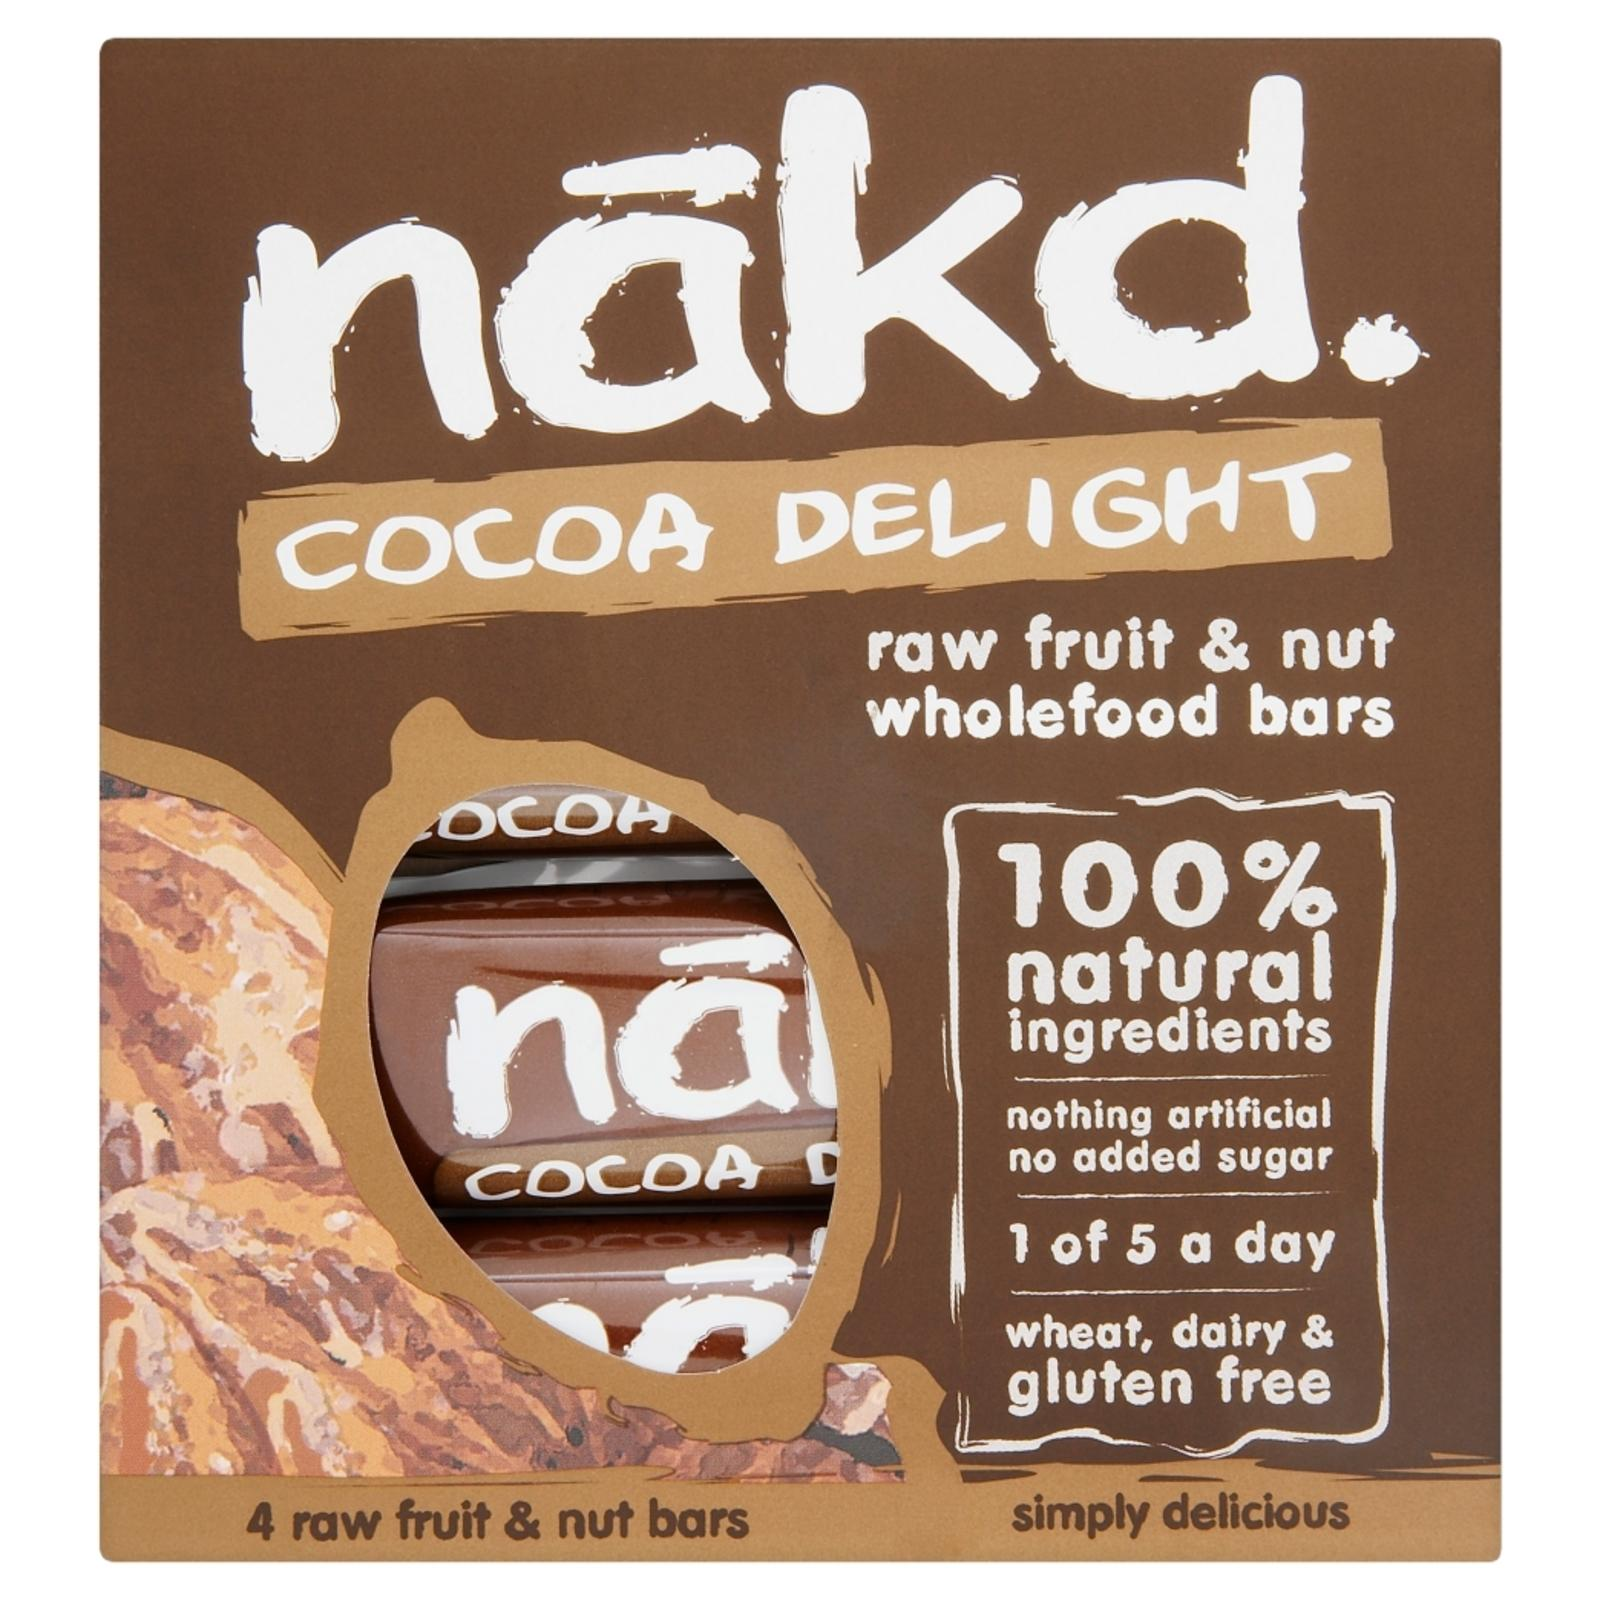 Nakd Gluten Free Cocoa Delight Wholefood Bar By Redmart.